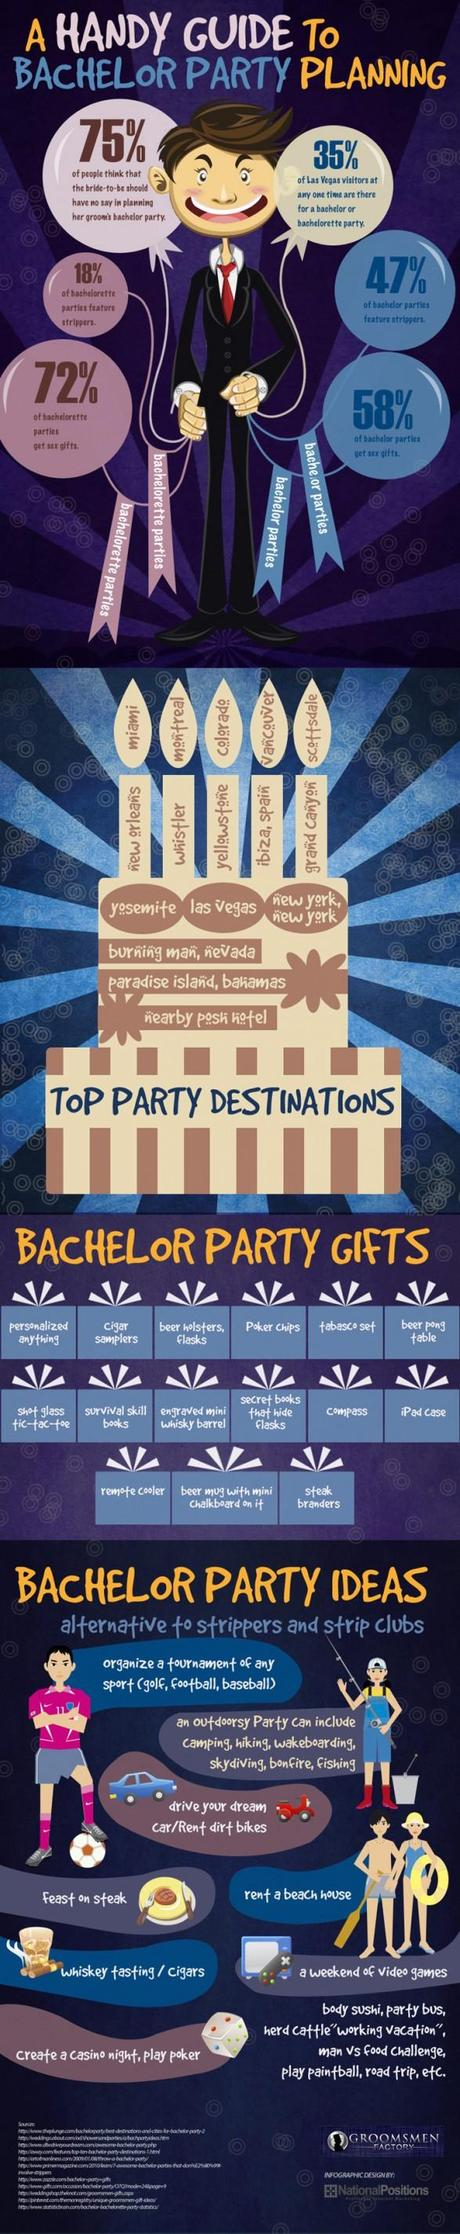 A Handy Guide To Bachelor Party Planning